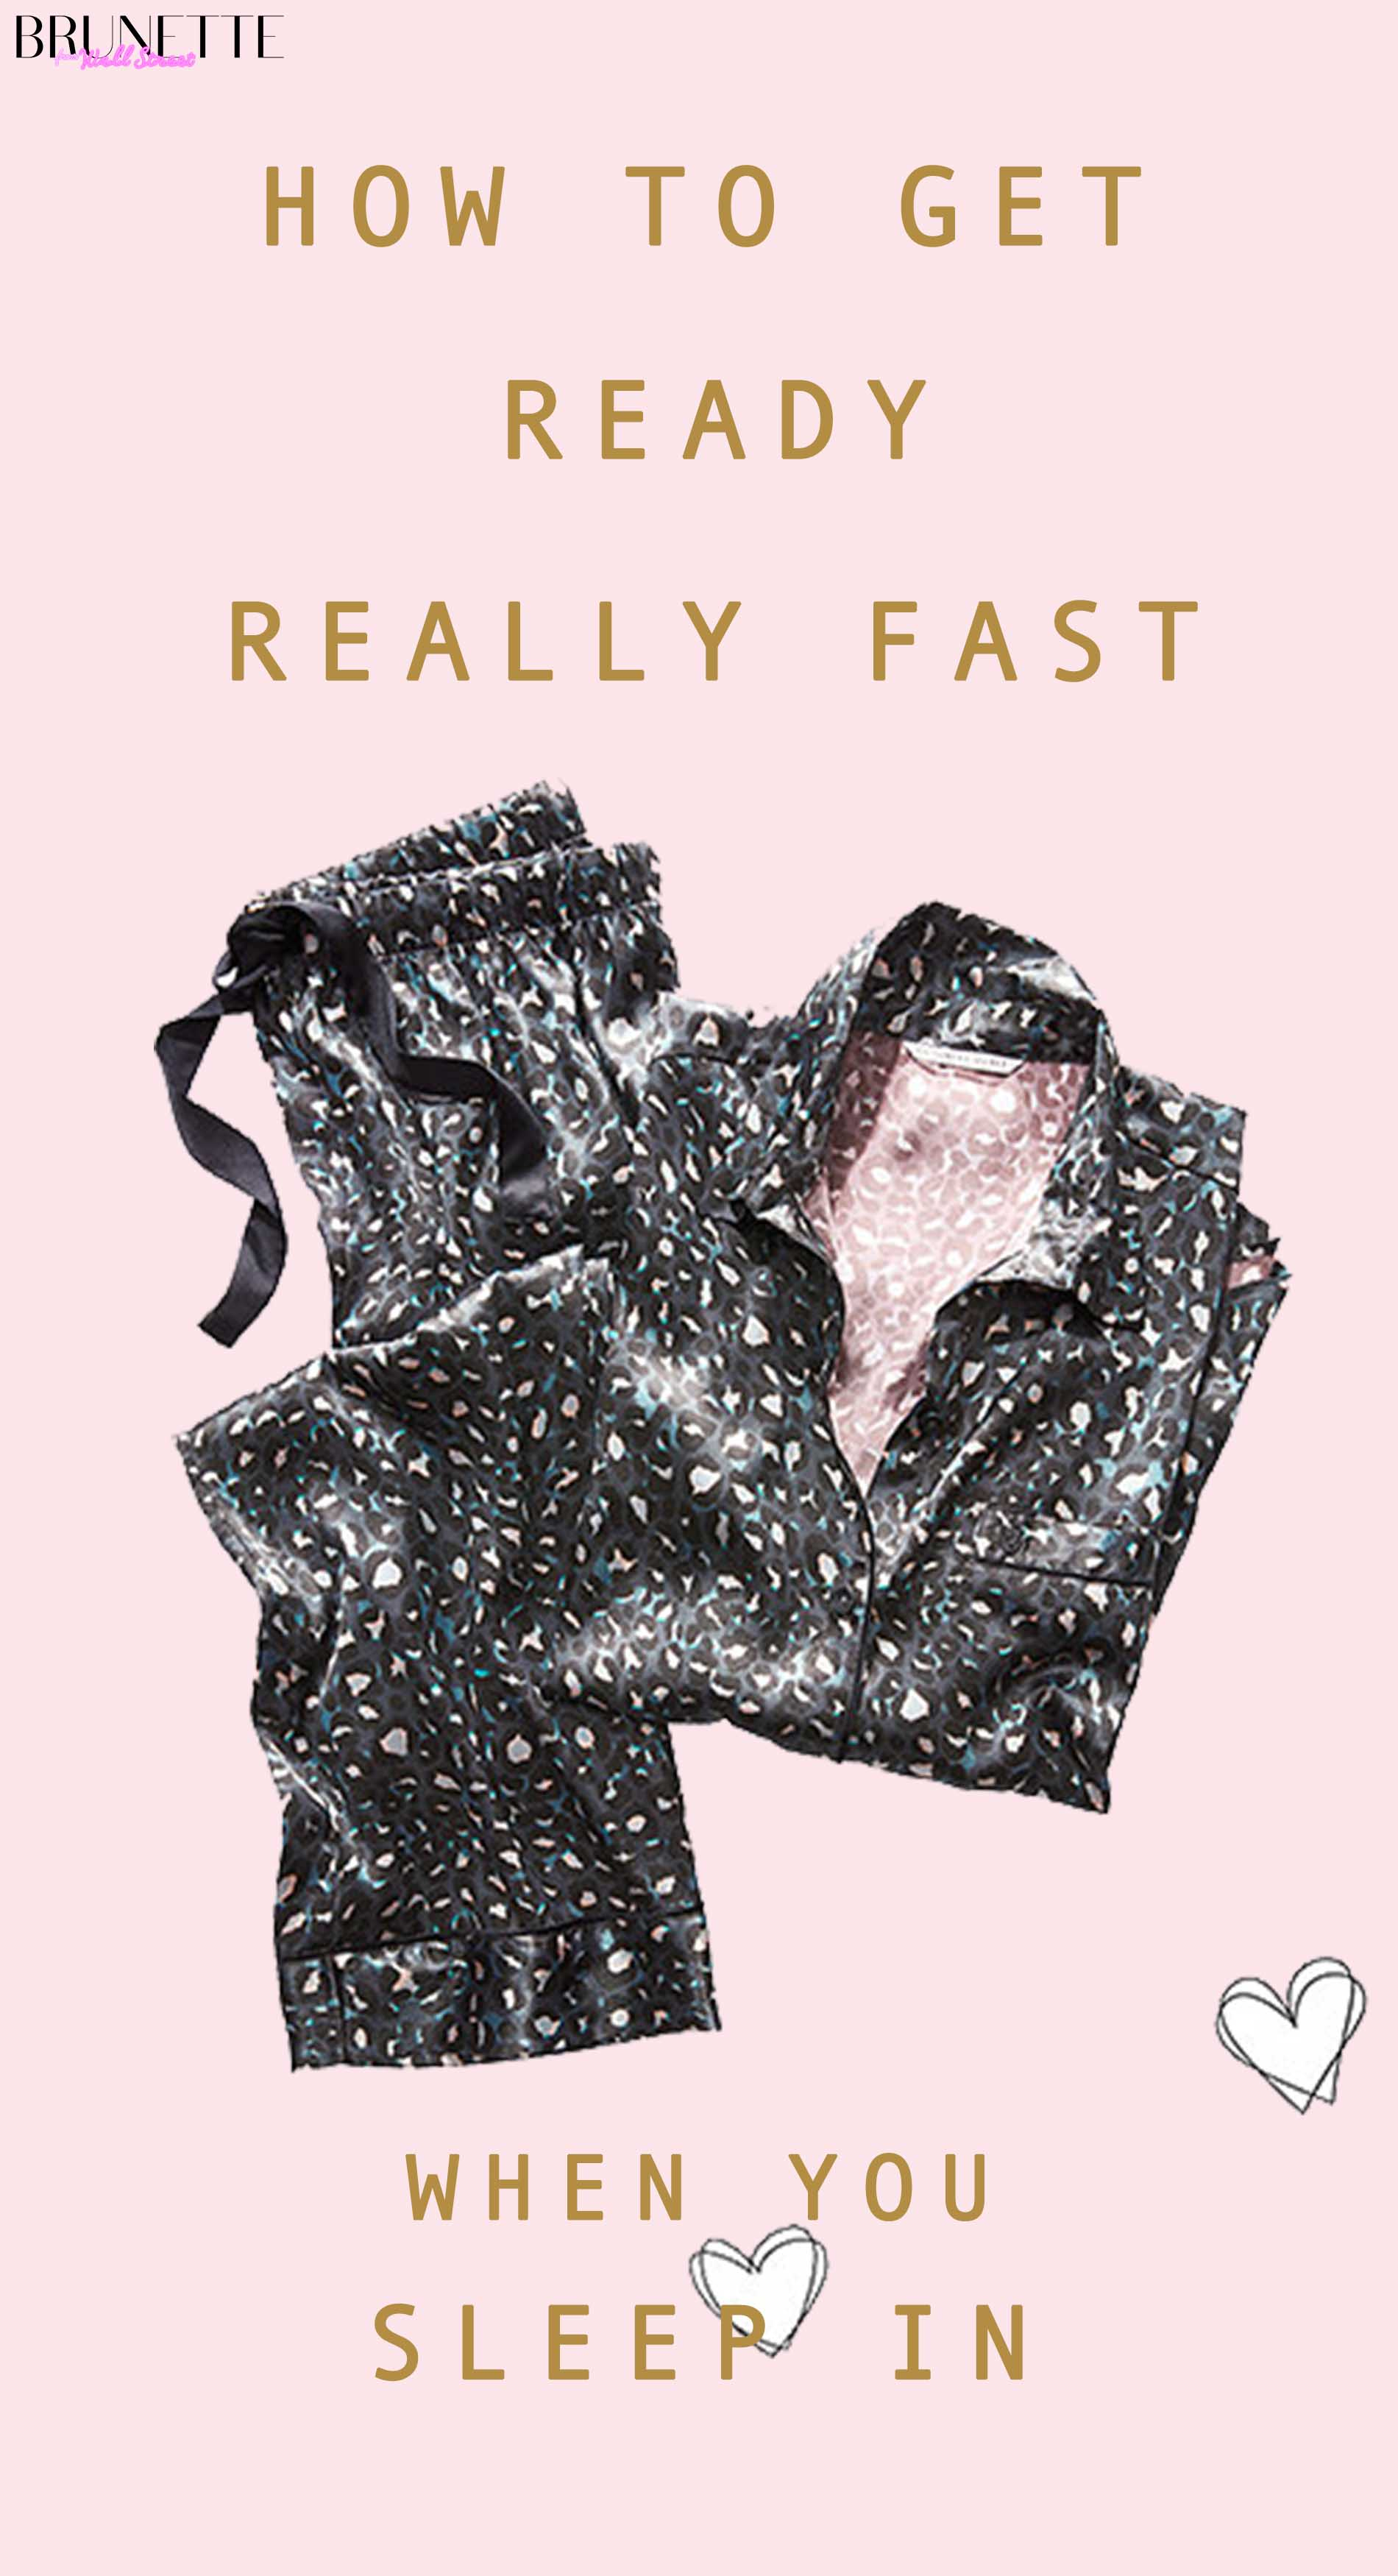 Victoria's Secret black star print pyjamas with text overlay How to get dressed really fast when you sleep in